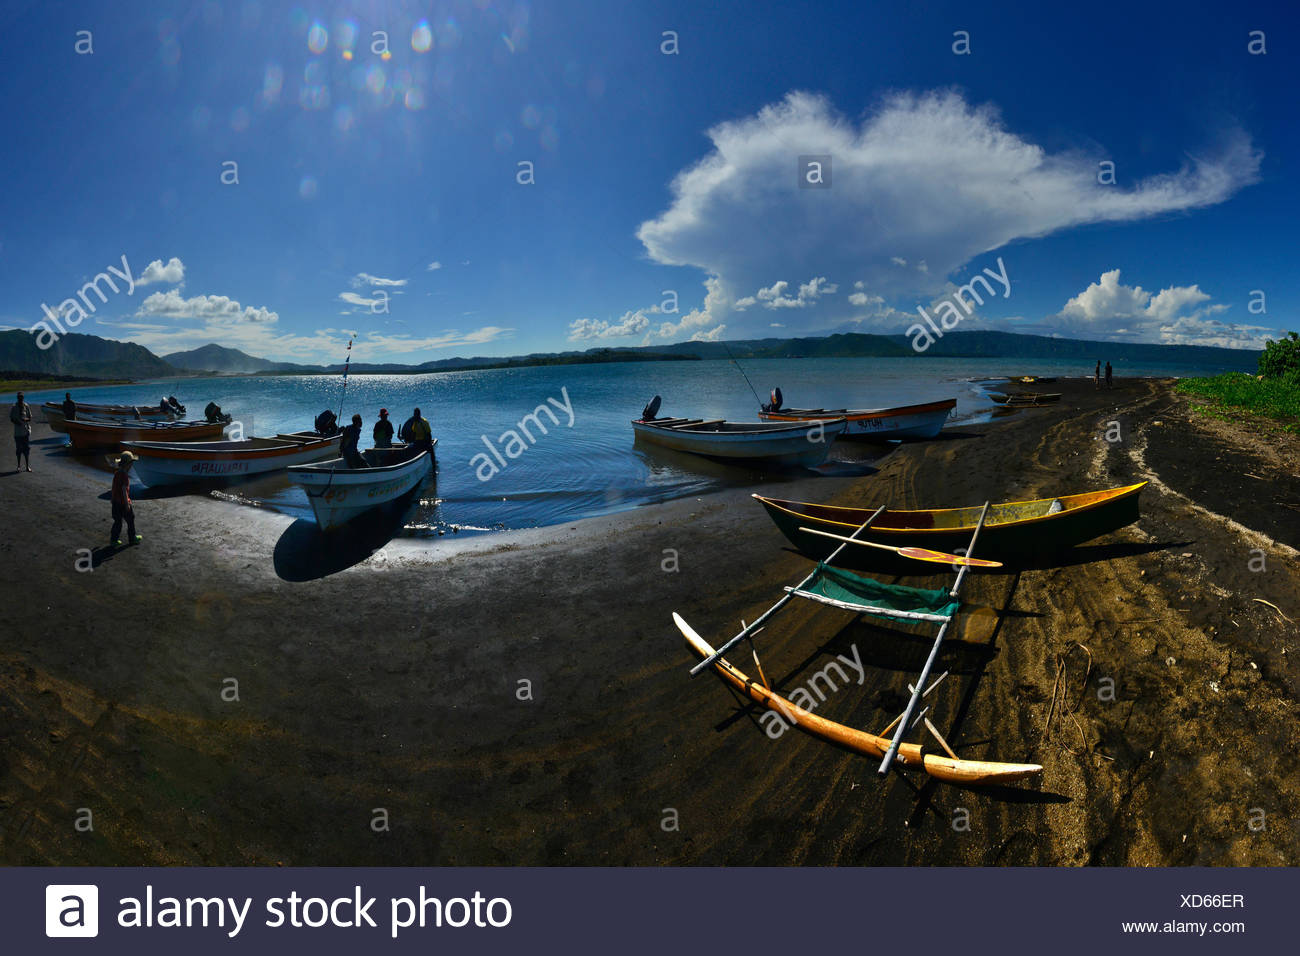 Local fishermen on the beach and an outrigger canoe. - Stock Image